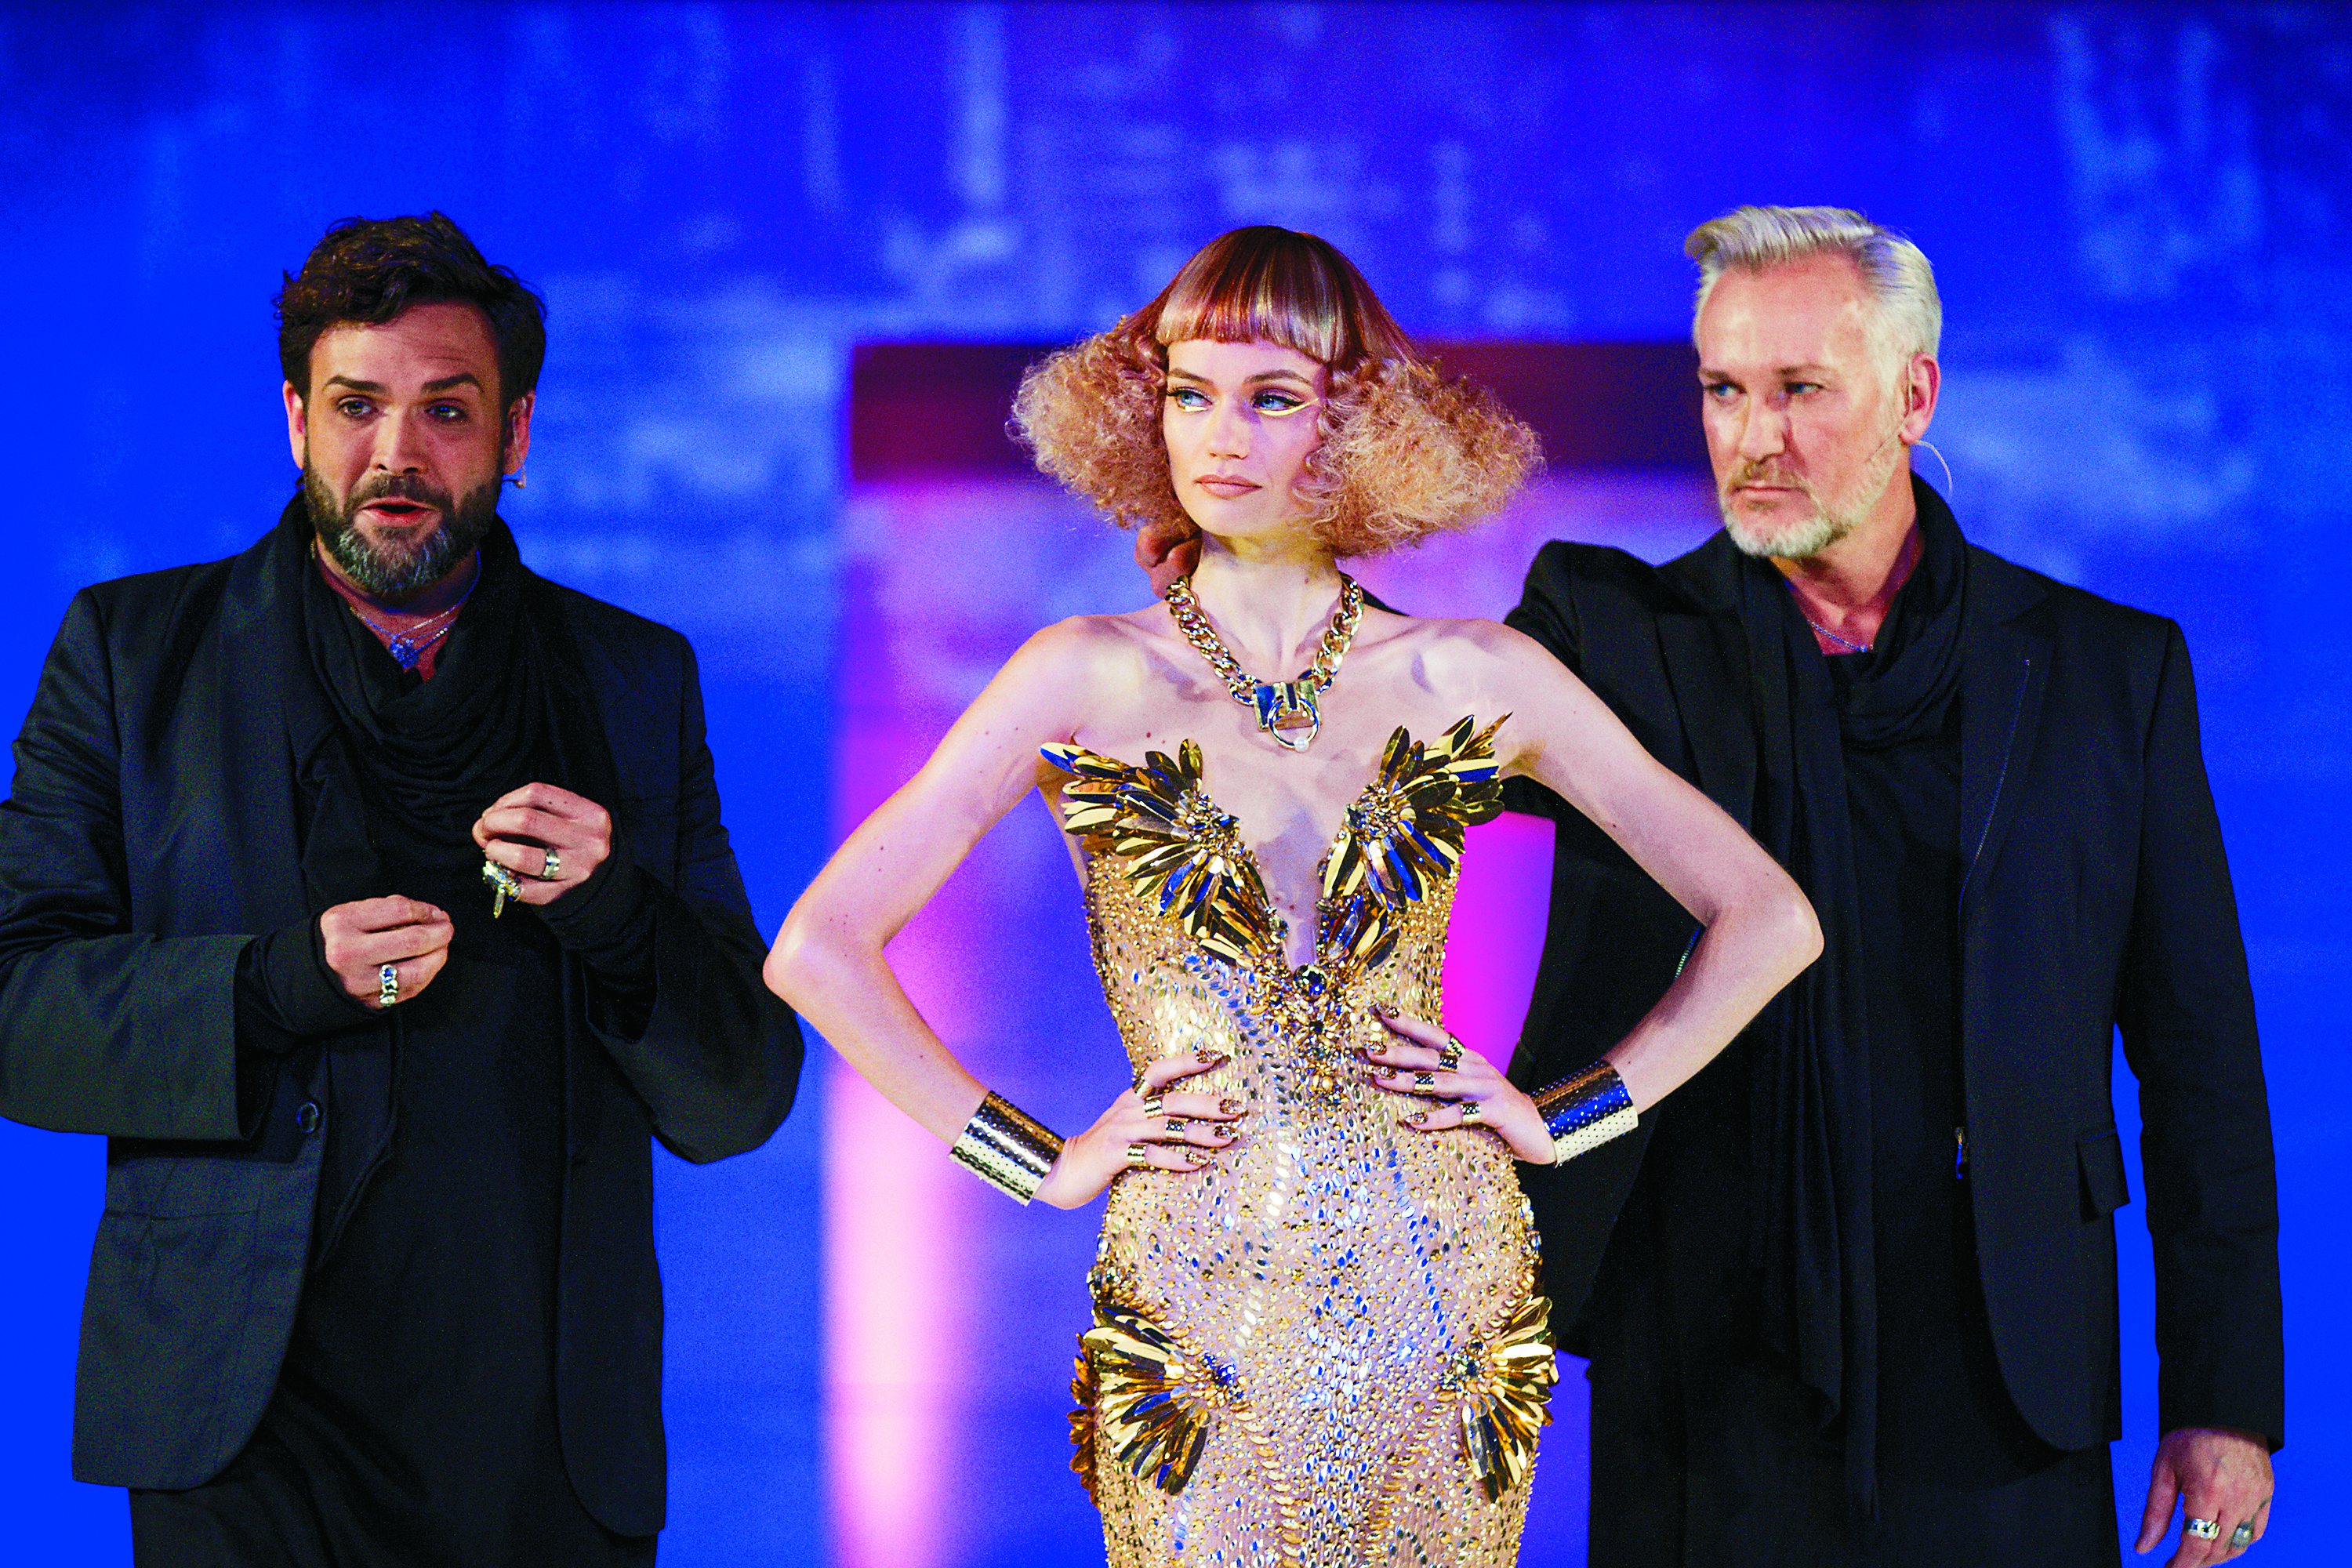 John Simpson and Christopher Dove, CoCre8 founders, collaborated with CND and design duo, The Blonds, on a high-impact presentation.